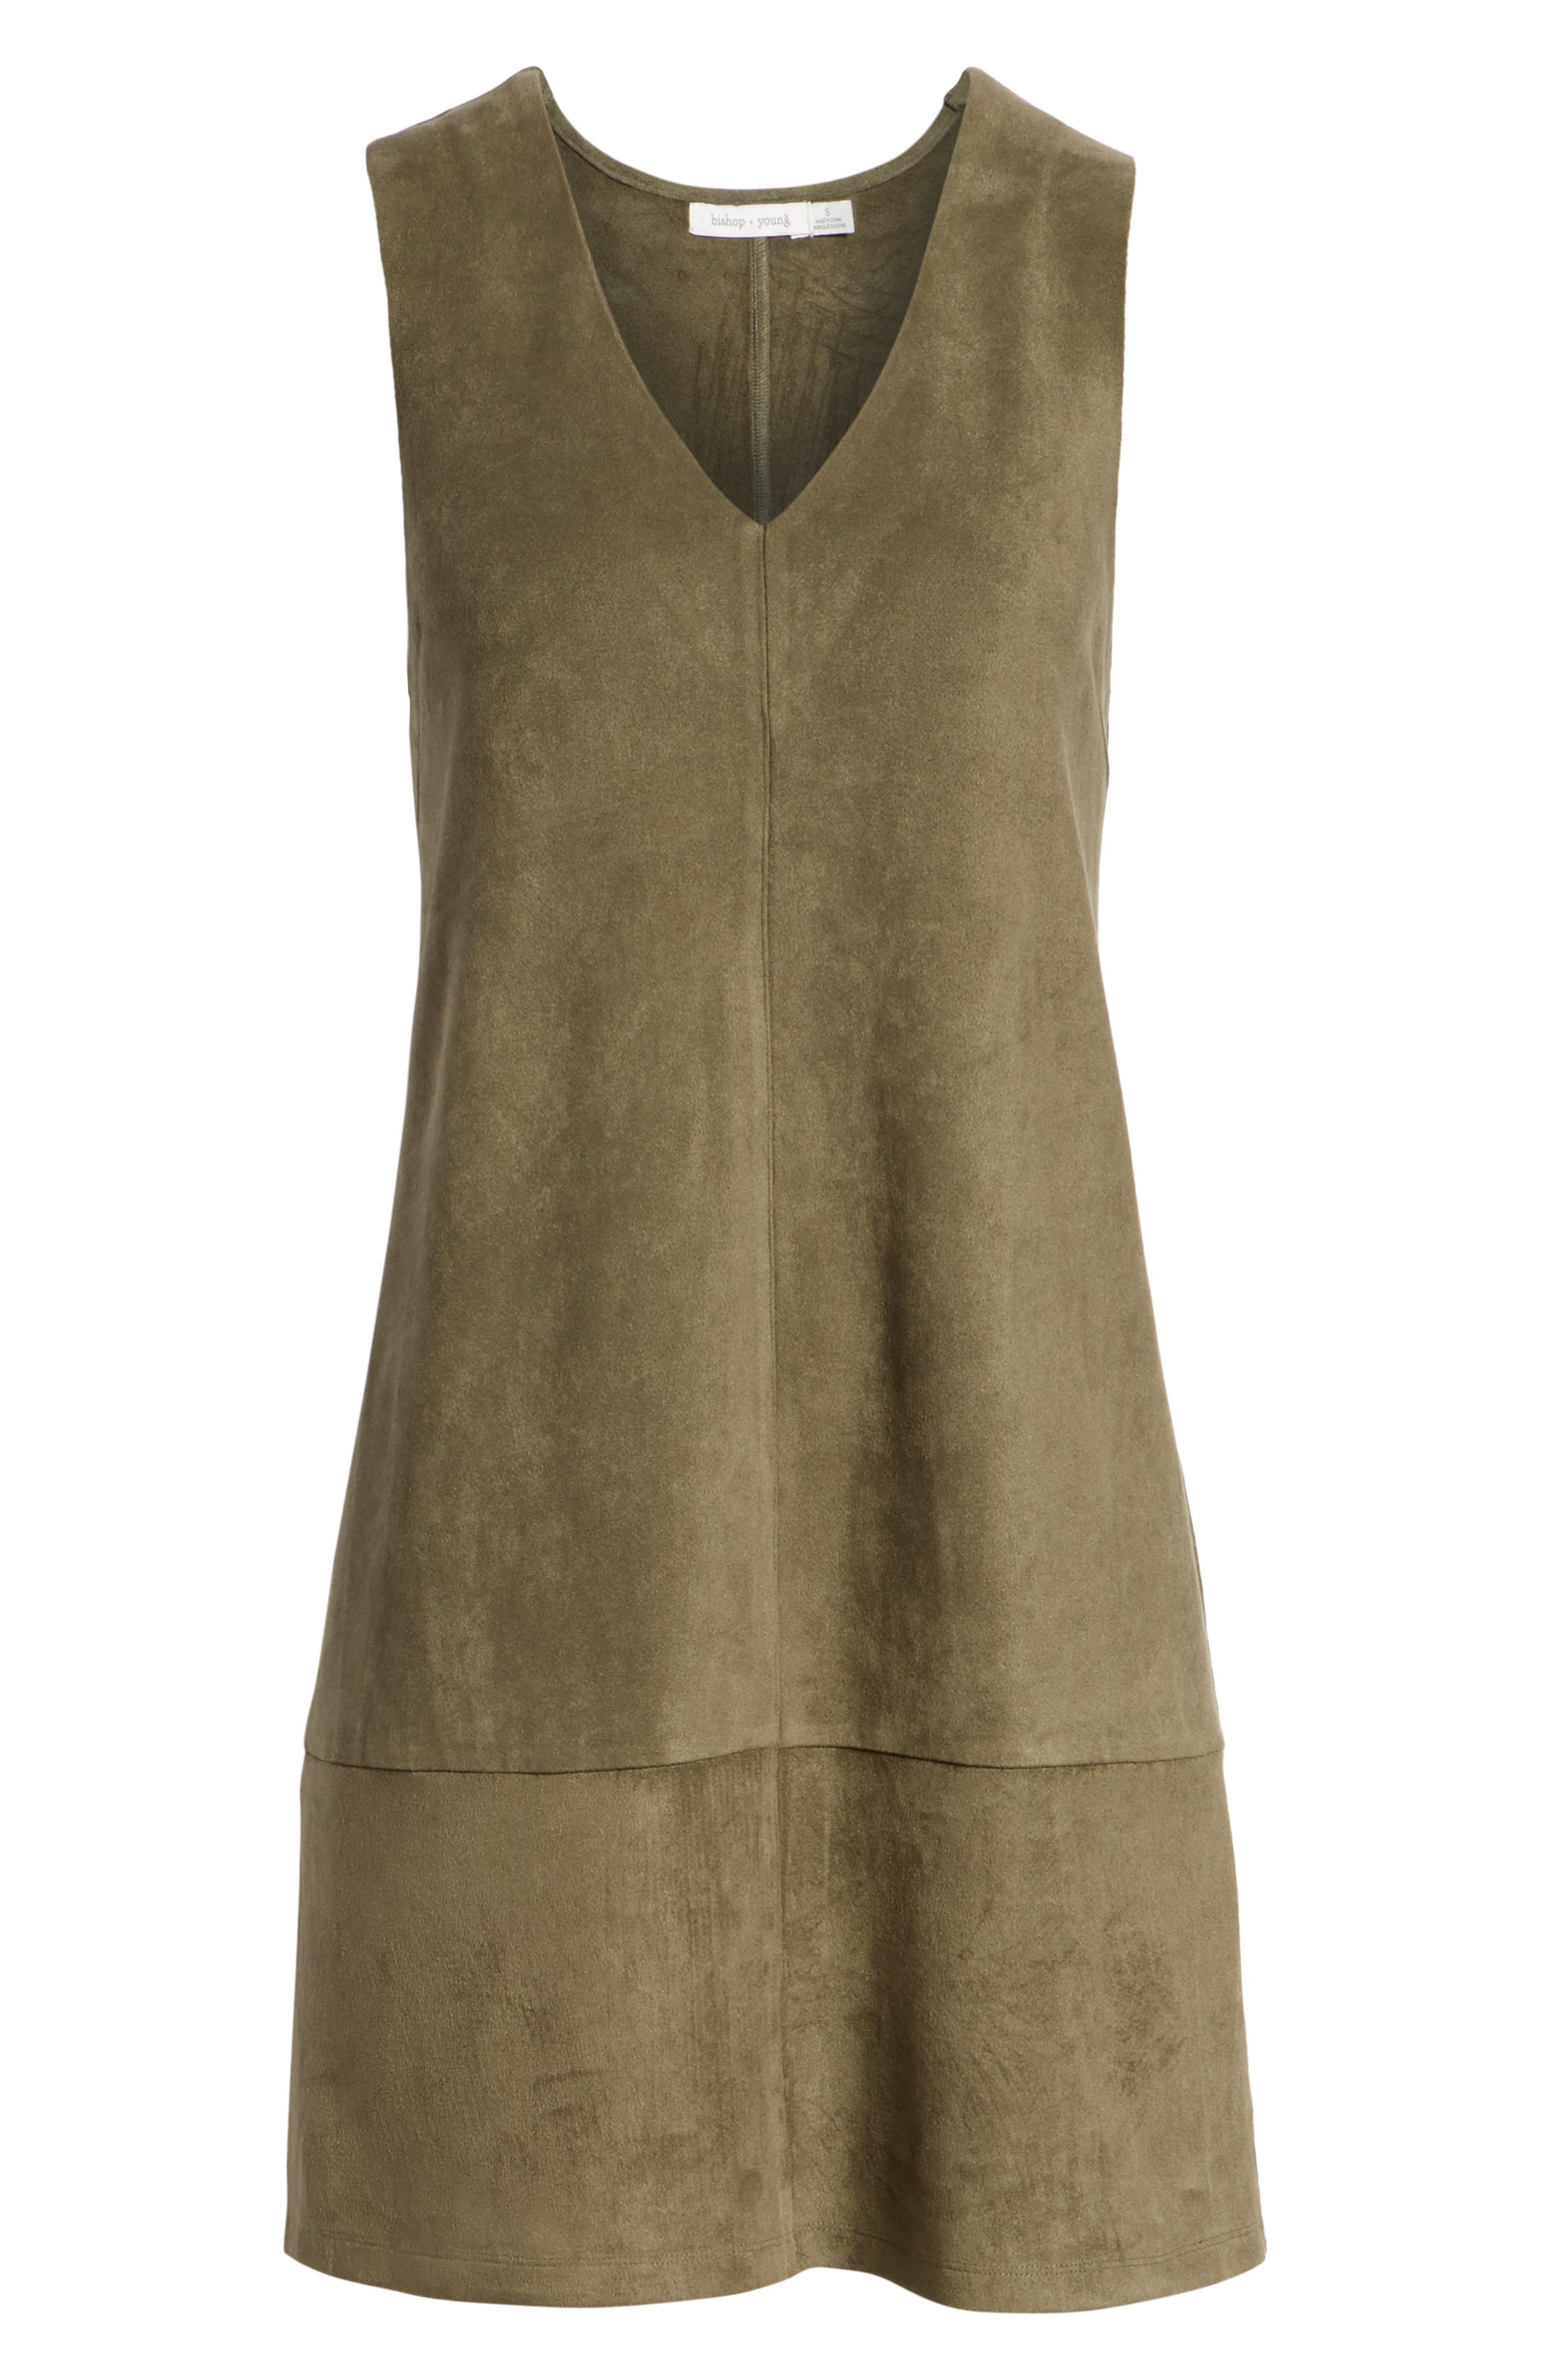 Bishop + Young Sueded Sleeveless Shift Dress,                             Alternate thumbnail 7, color,                             OLIVE